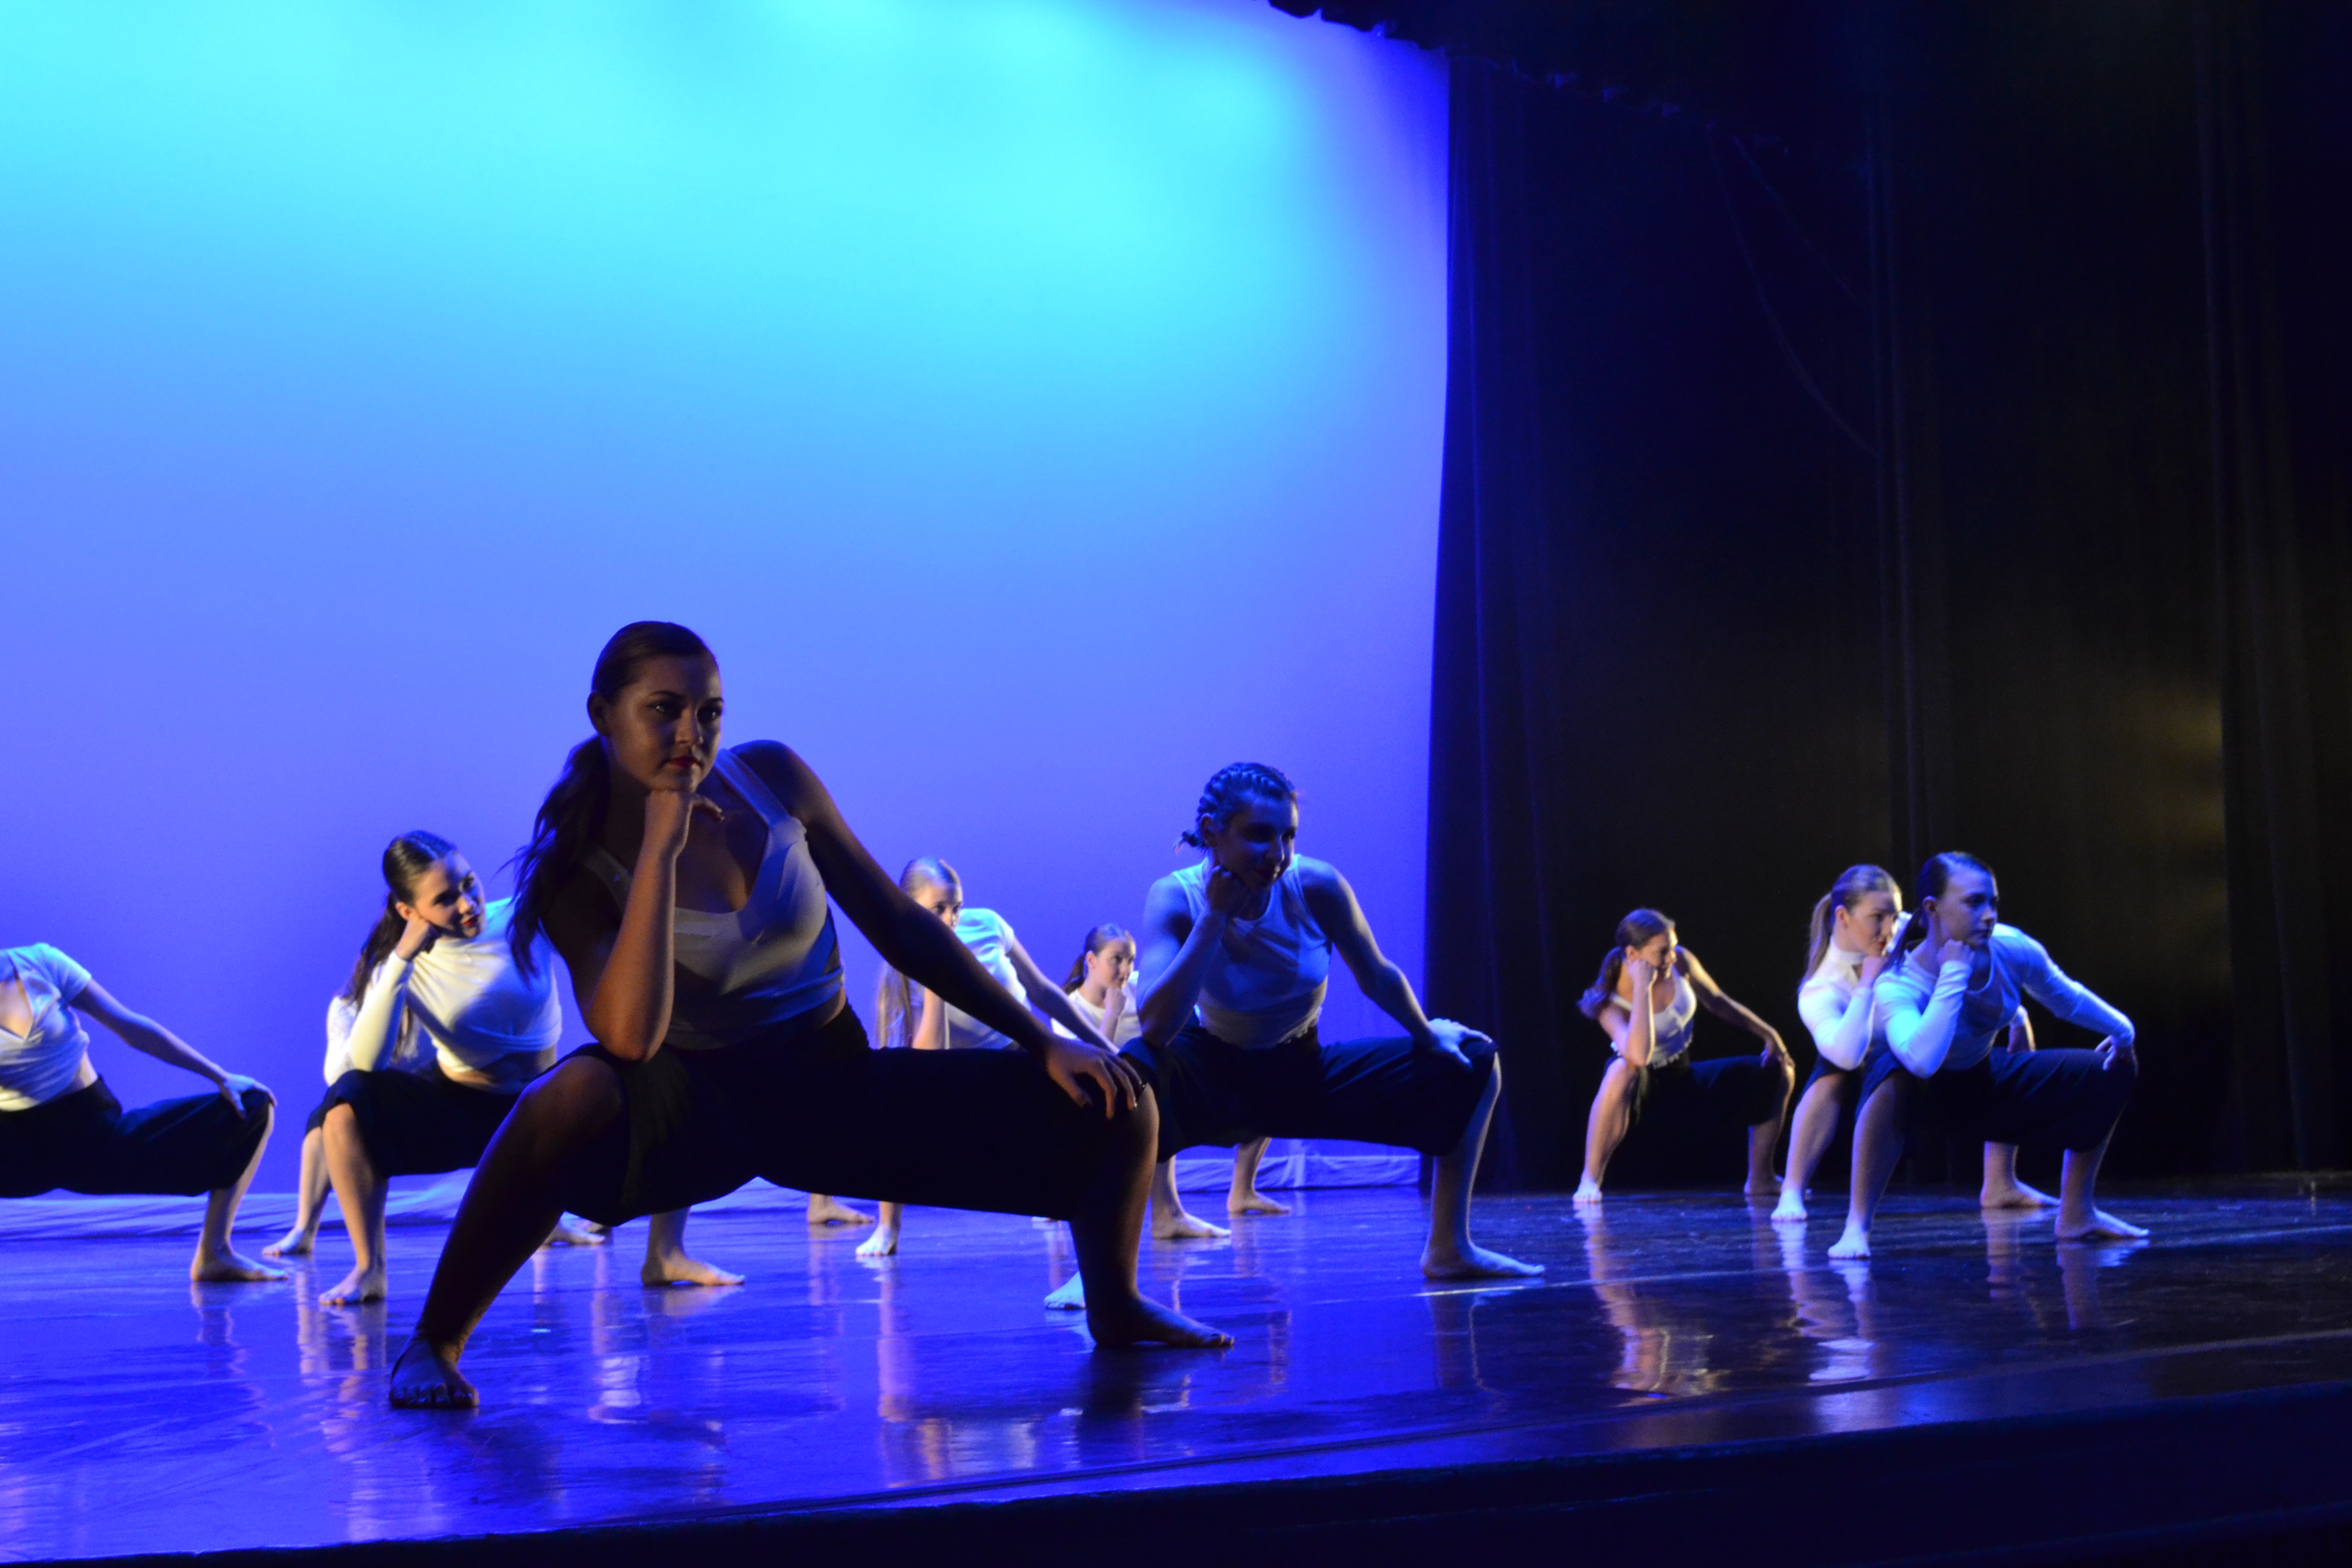 a group of dancers in casual, modern attire